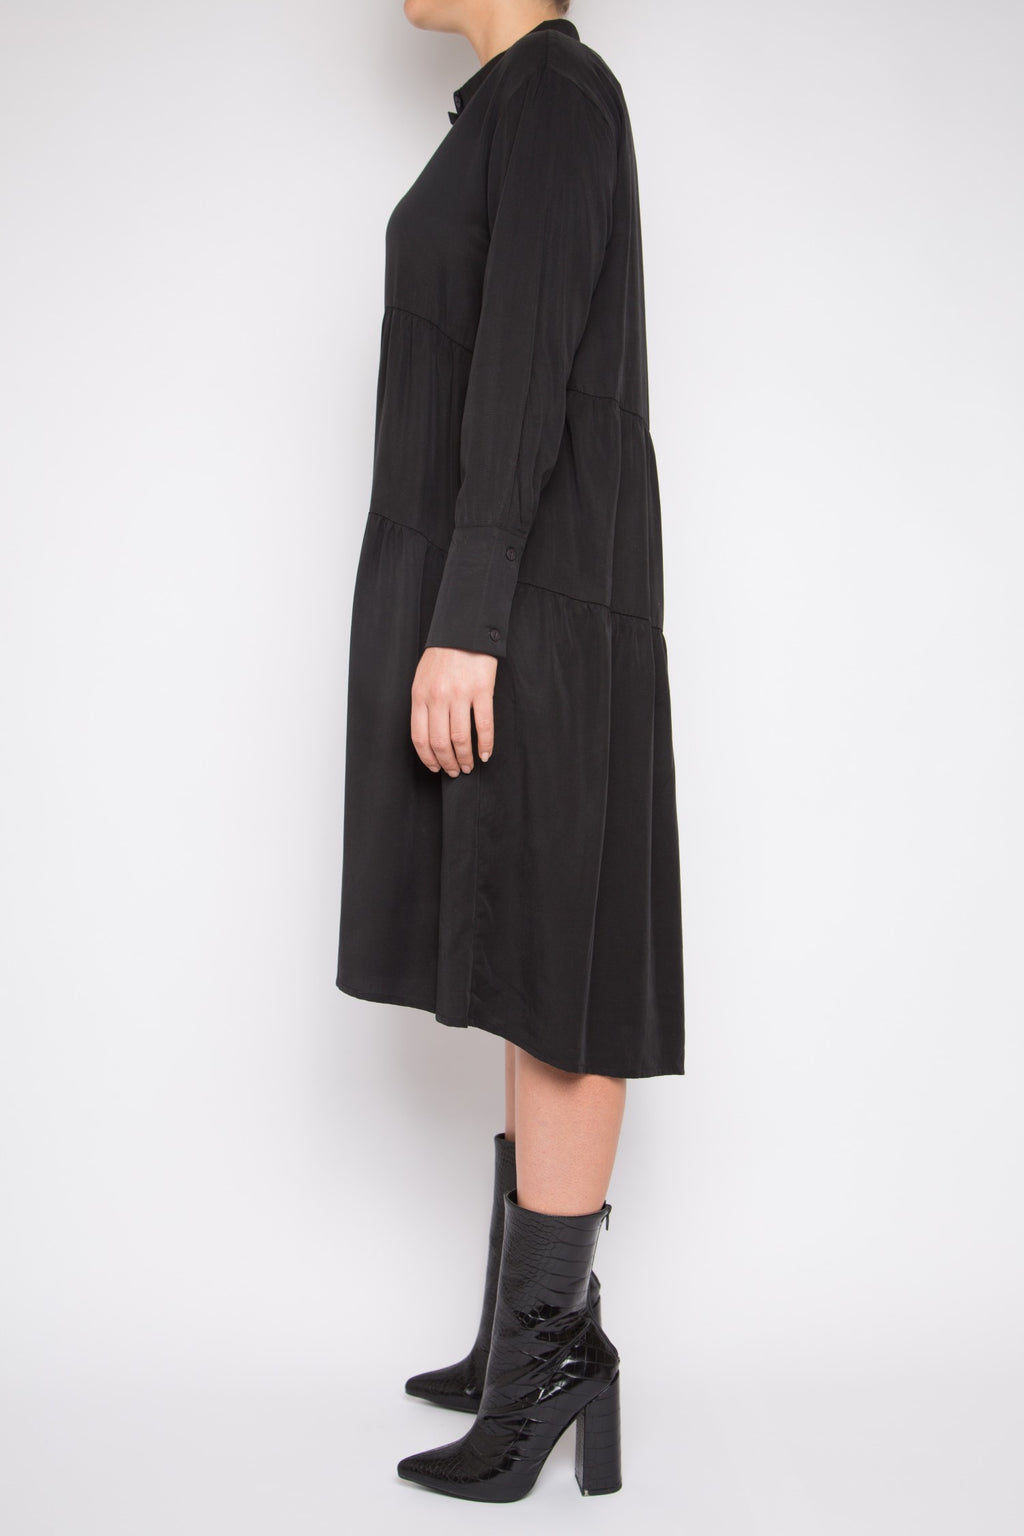 Ruan Dress in Black